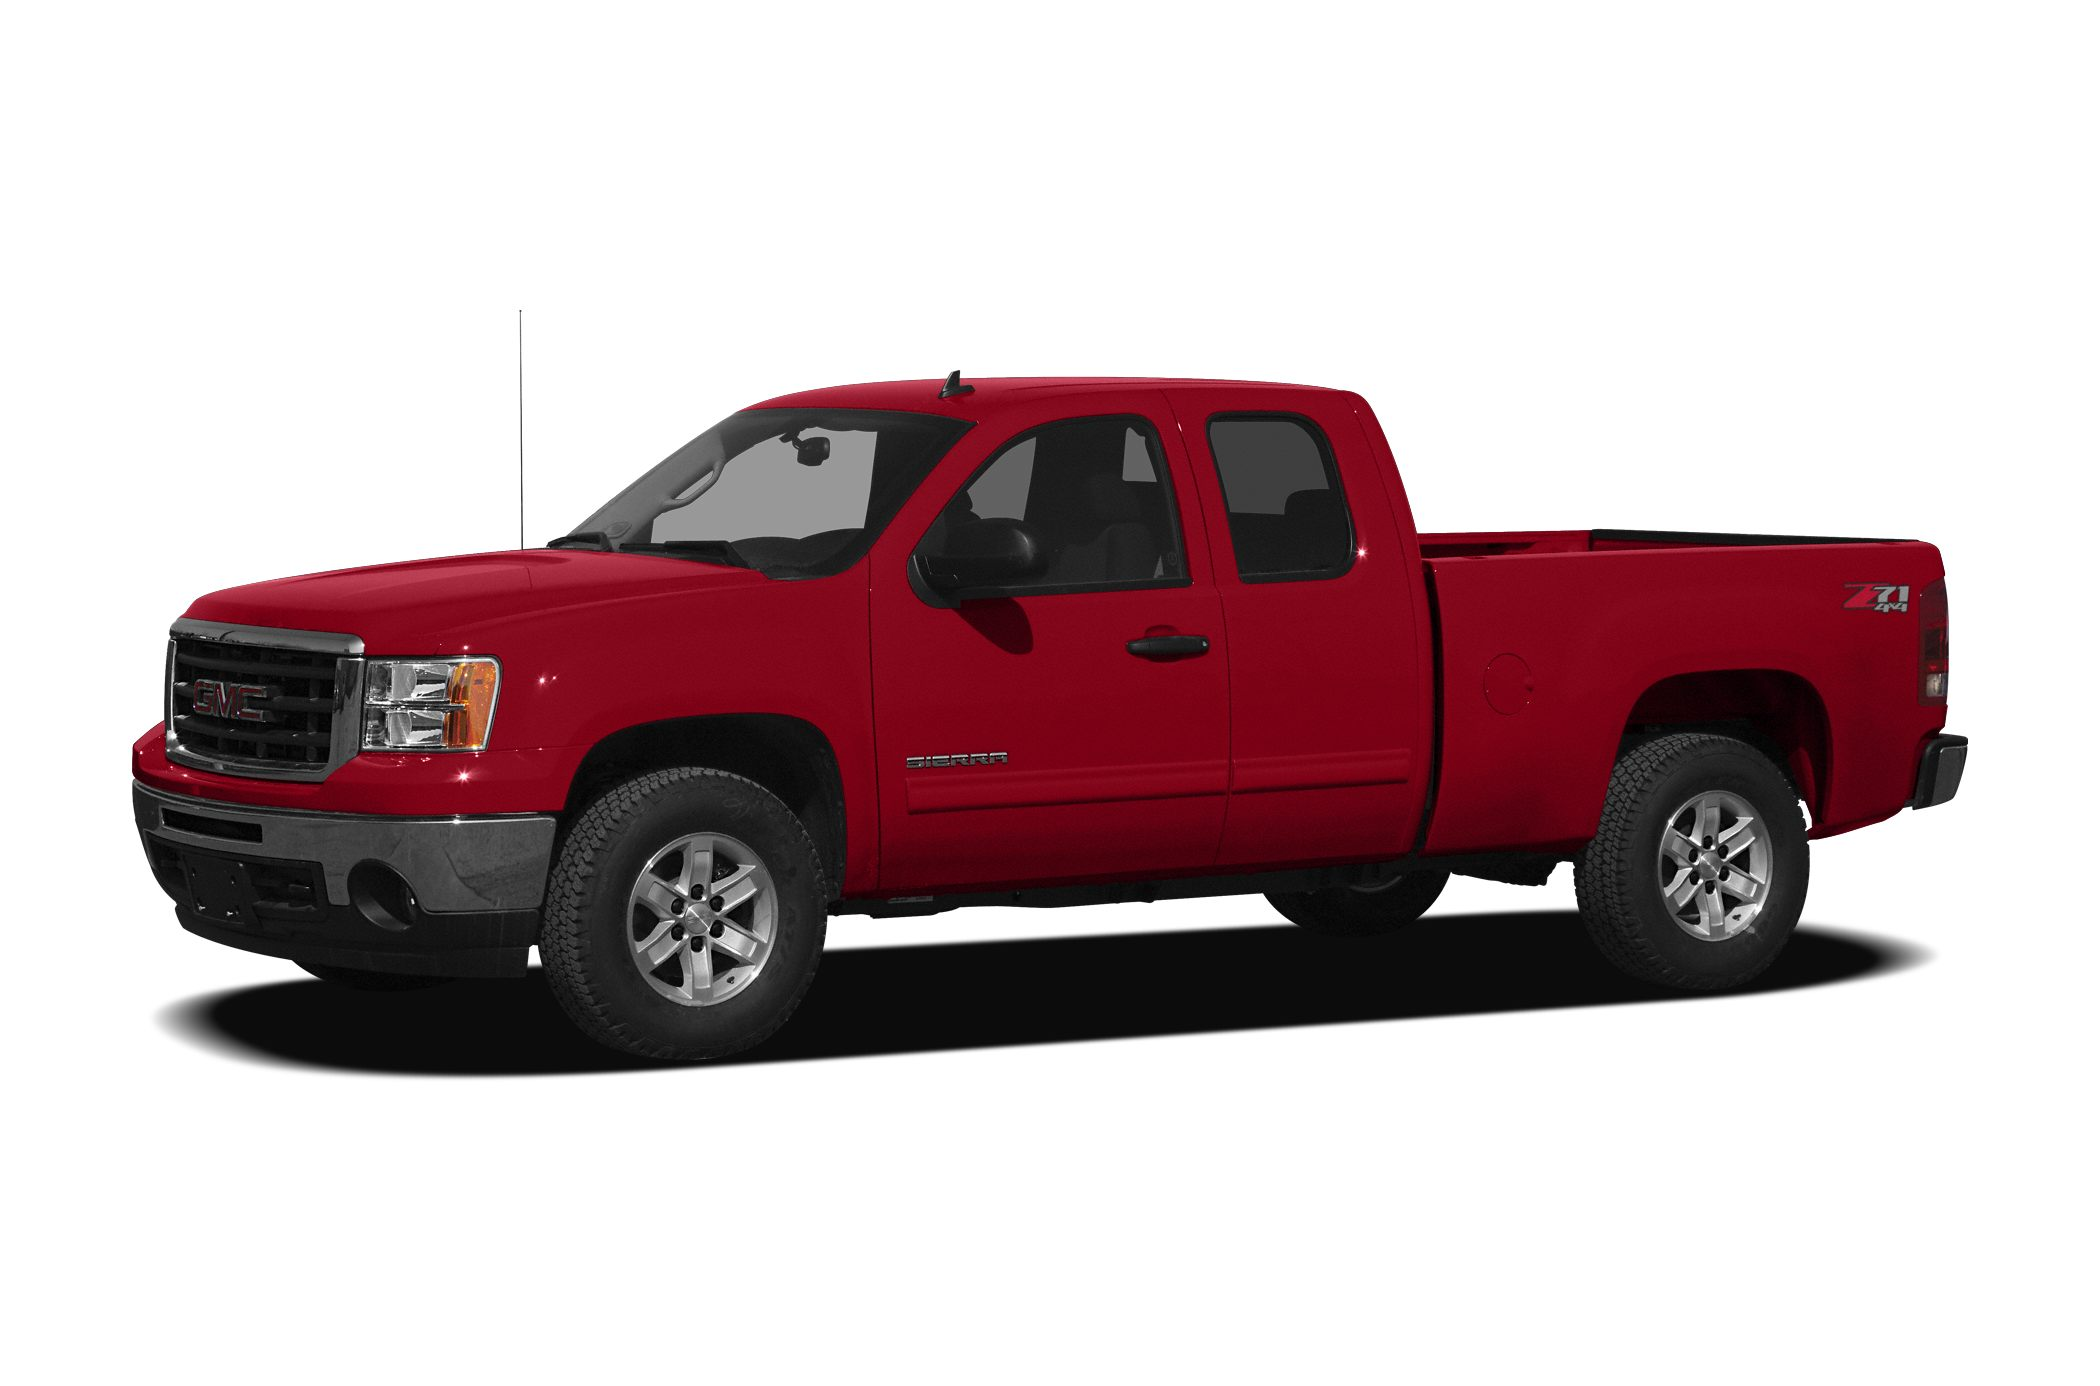 2010 GMC Sierra 1500 SLT ITS OUR 50TH ANNIVERSARY HERE AT MARTYS AND TO CELEBRATE WERE OFFERING